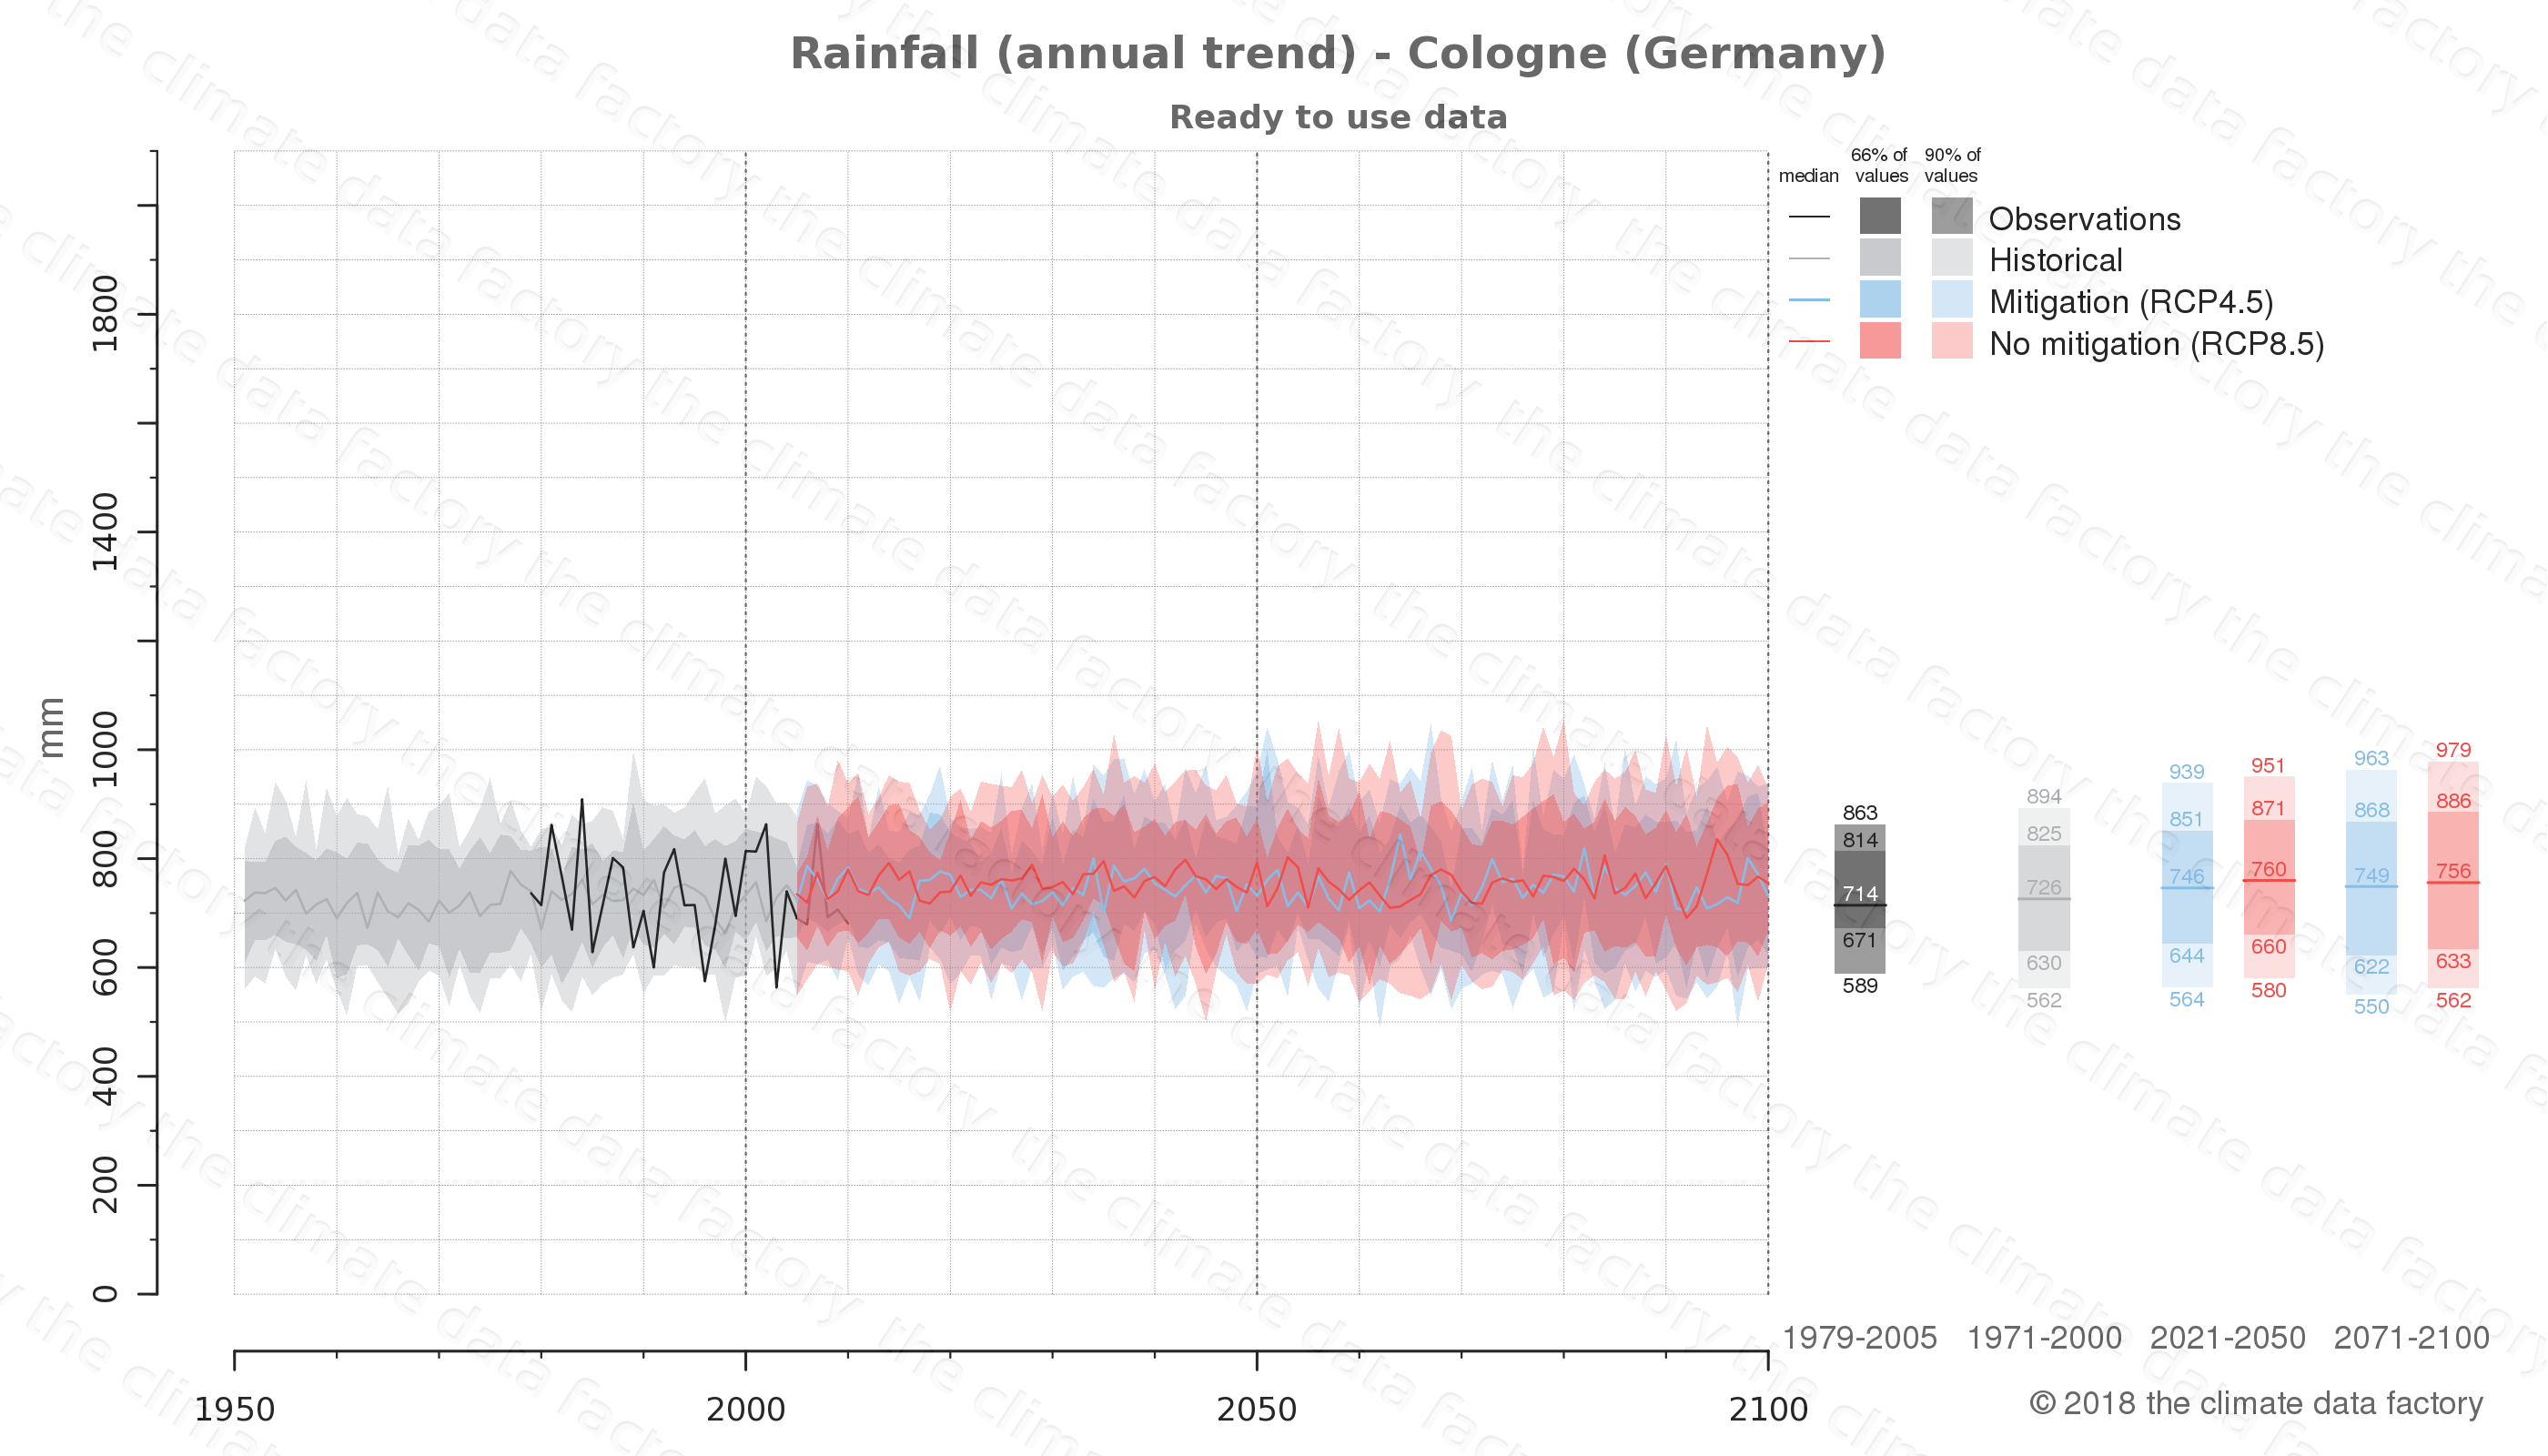 climate change data policy adaptation climate graph city data rainfall cologne germany